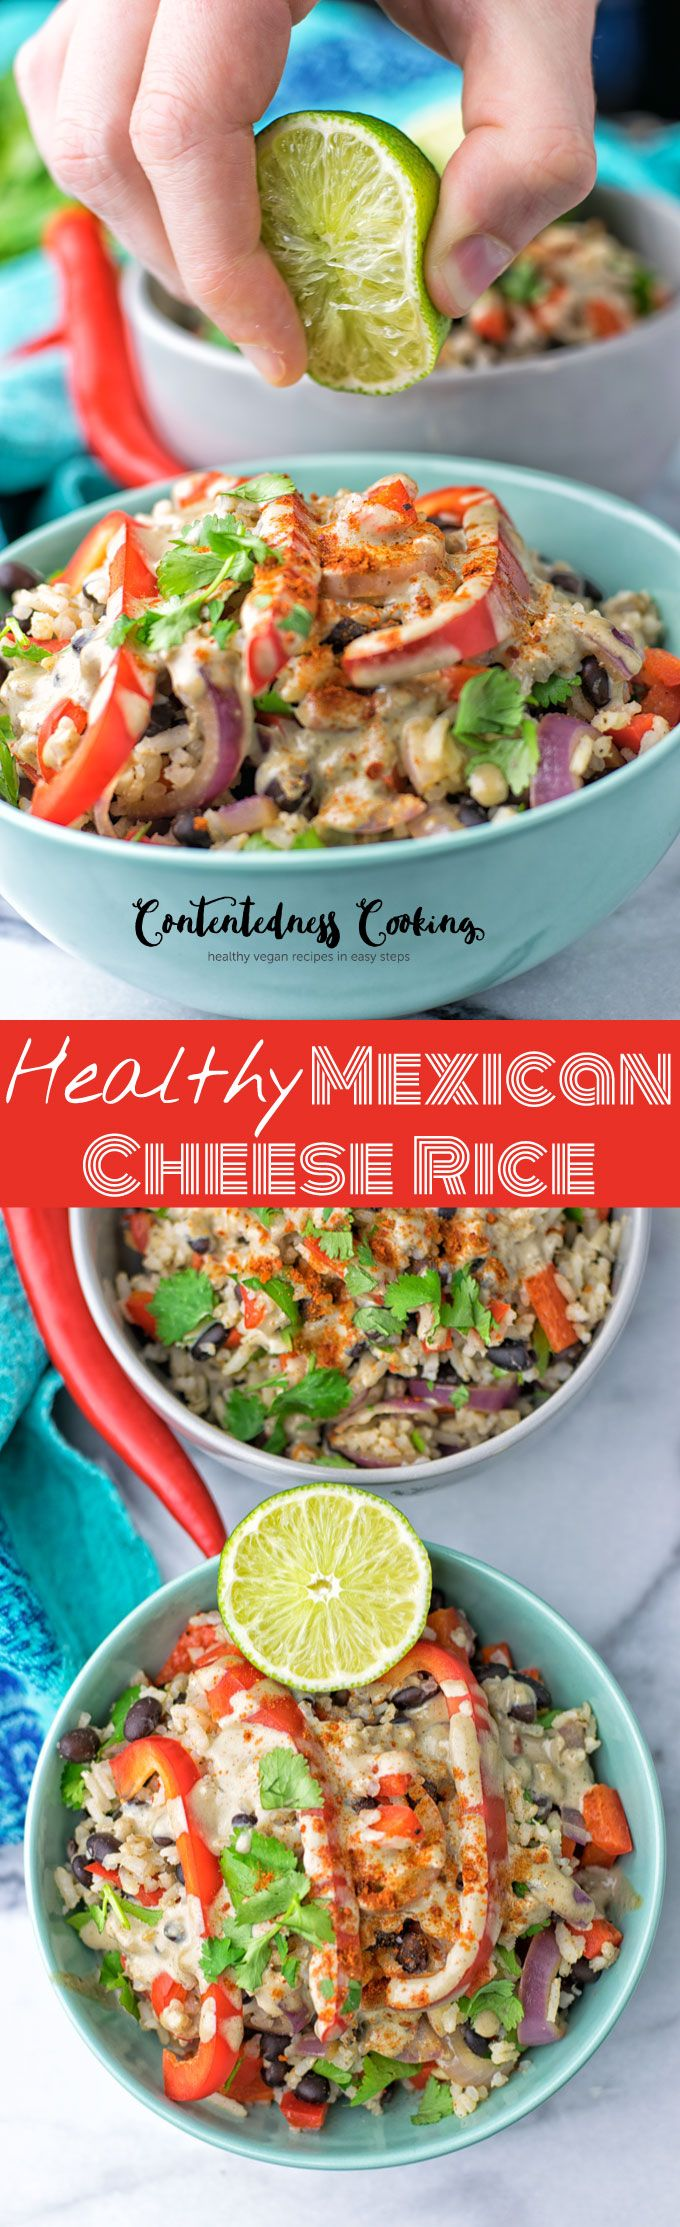 This #Healthy #MexicanCheese #Rice is made with just 5 simple ingredients and in 2 easy steps. A flavorful crunchy dish showing how delicious #vegan #Mexicanstyle #food is. #glutenfree #lunch #dinner